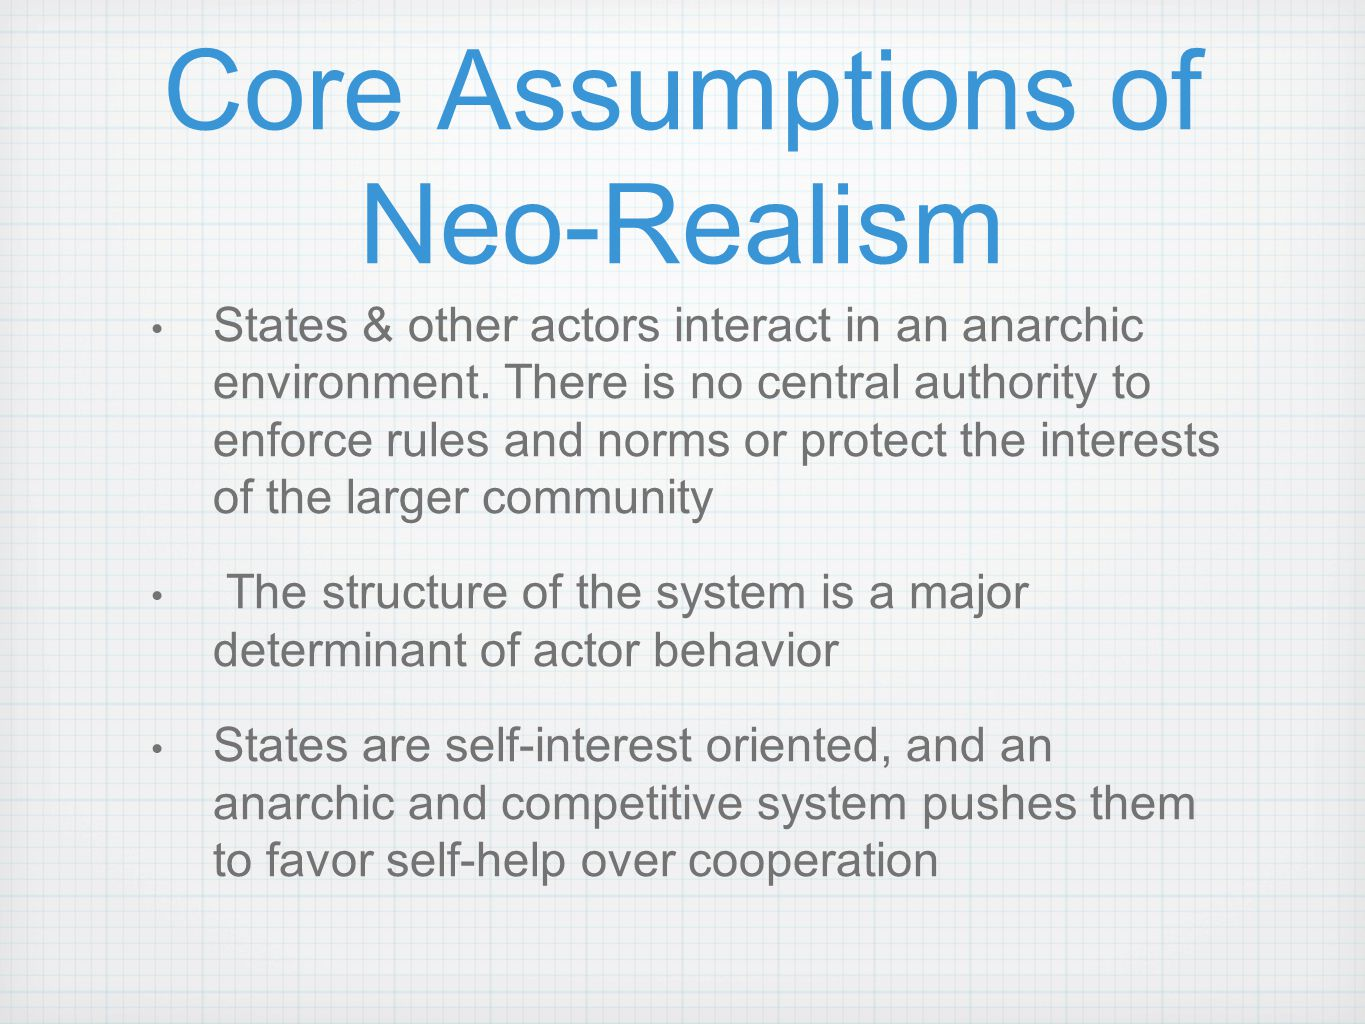 Core Assumptions of Neo-Realism